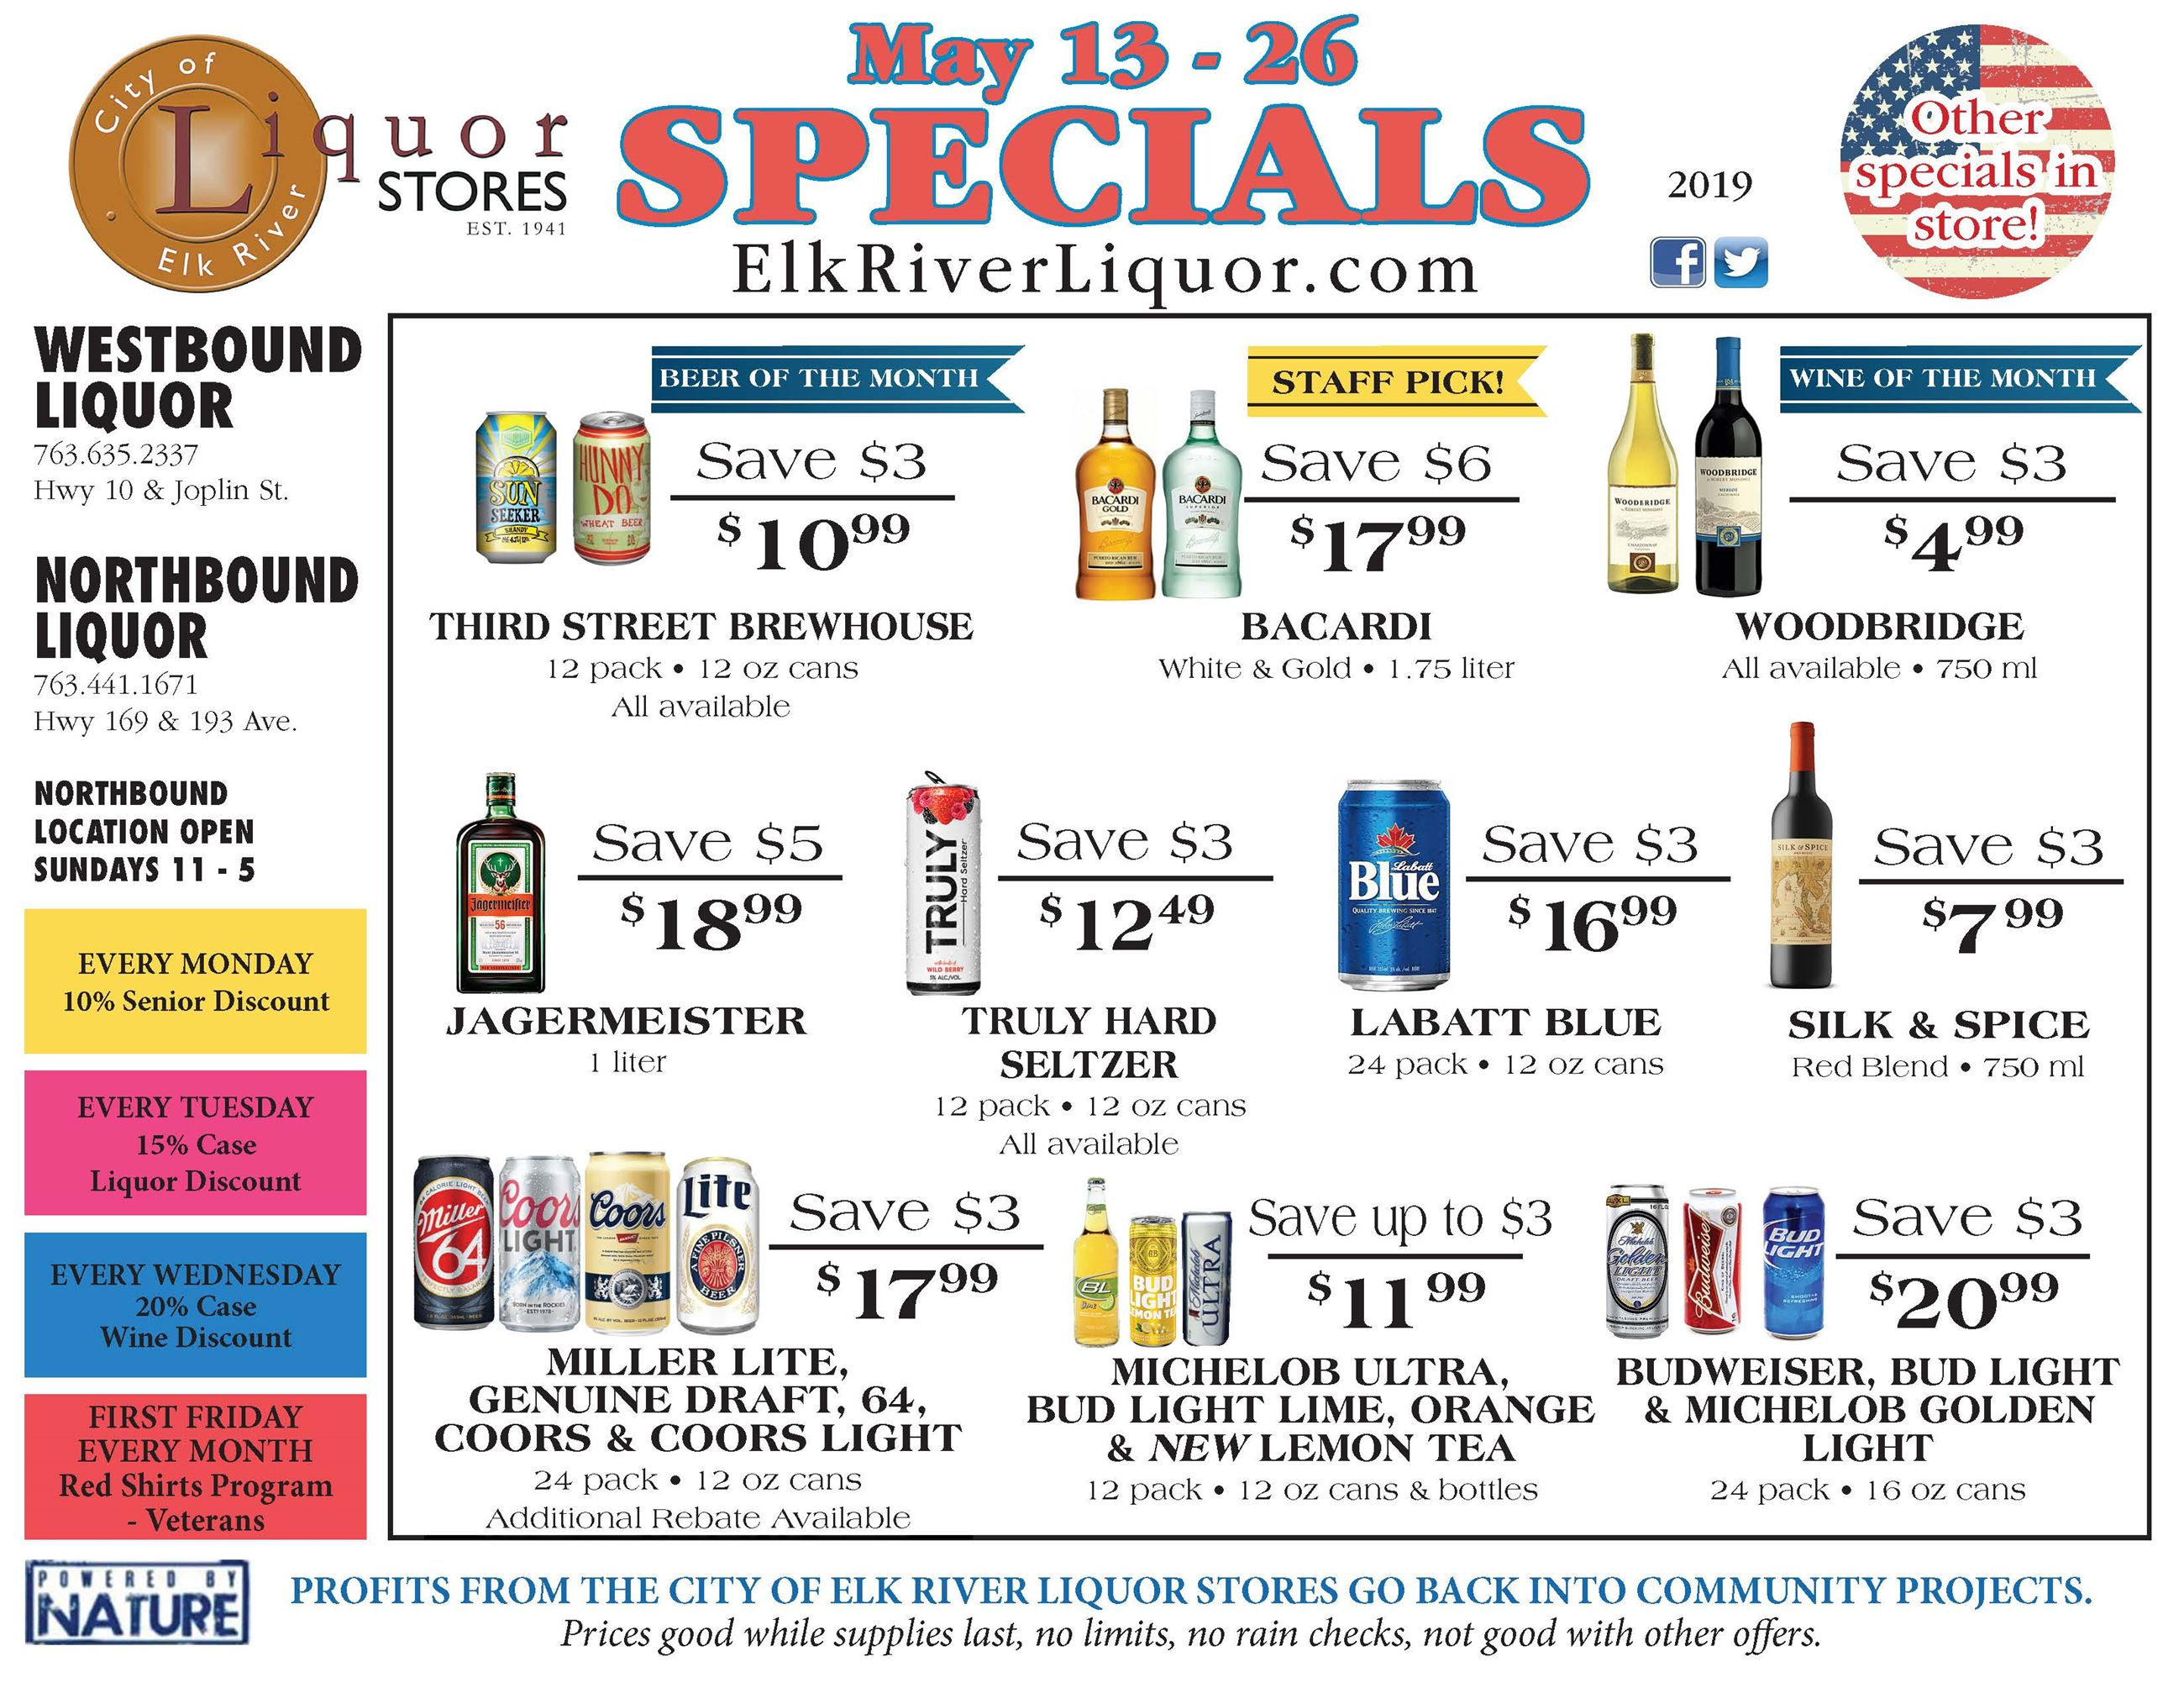 Elk River Liquor specials May 13-26, 2019